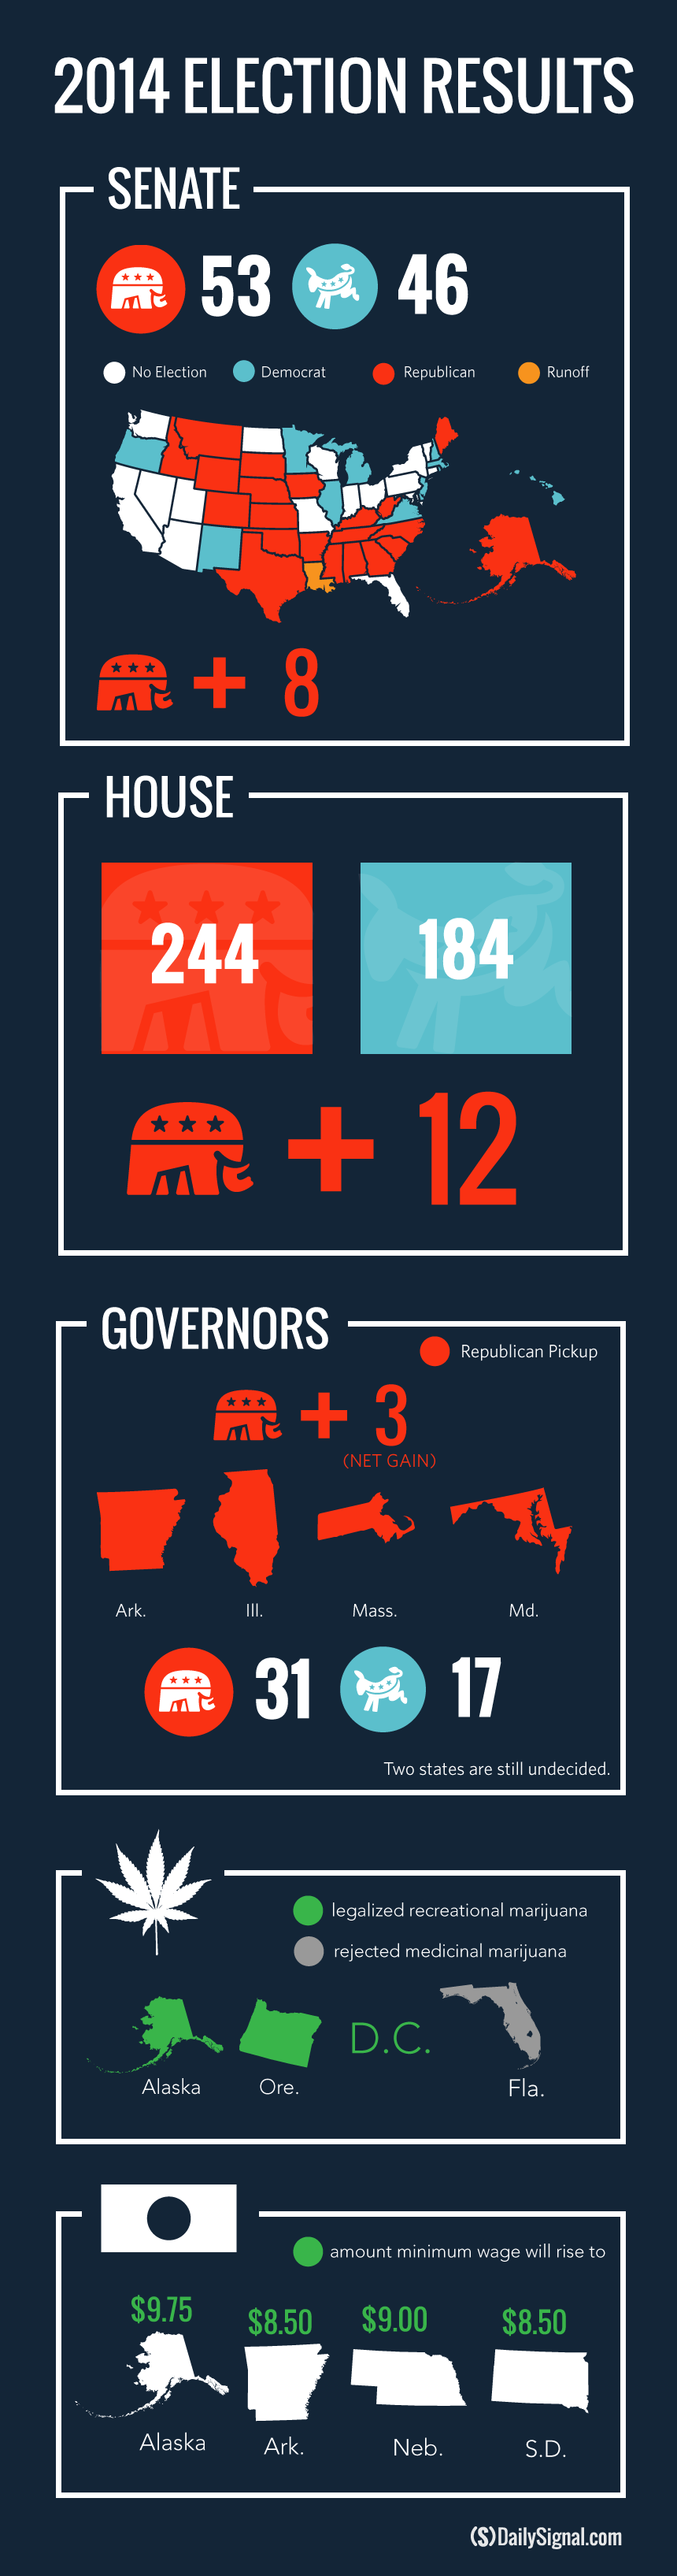 Infographic by Kelsey Harris/The Daily Signal. Updated Nov. 12, 2014.